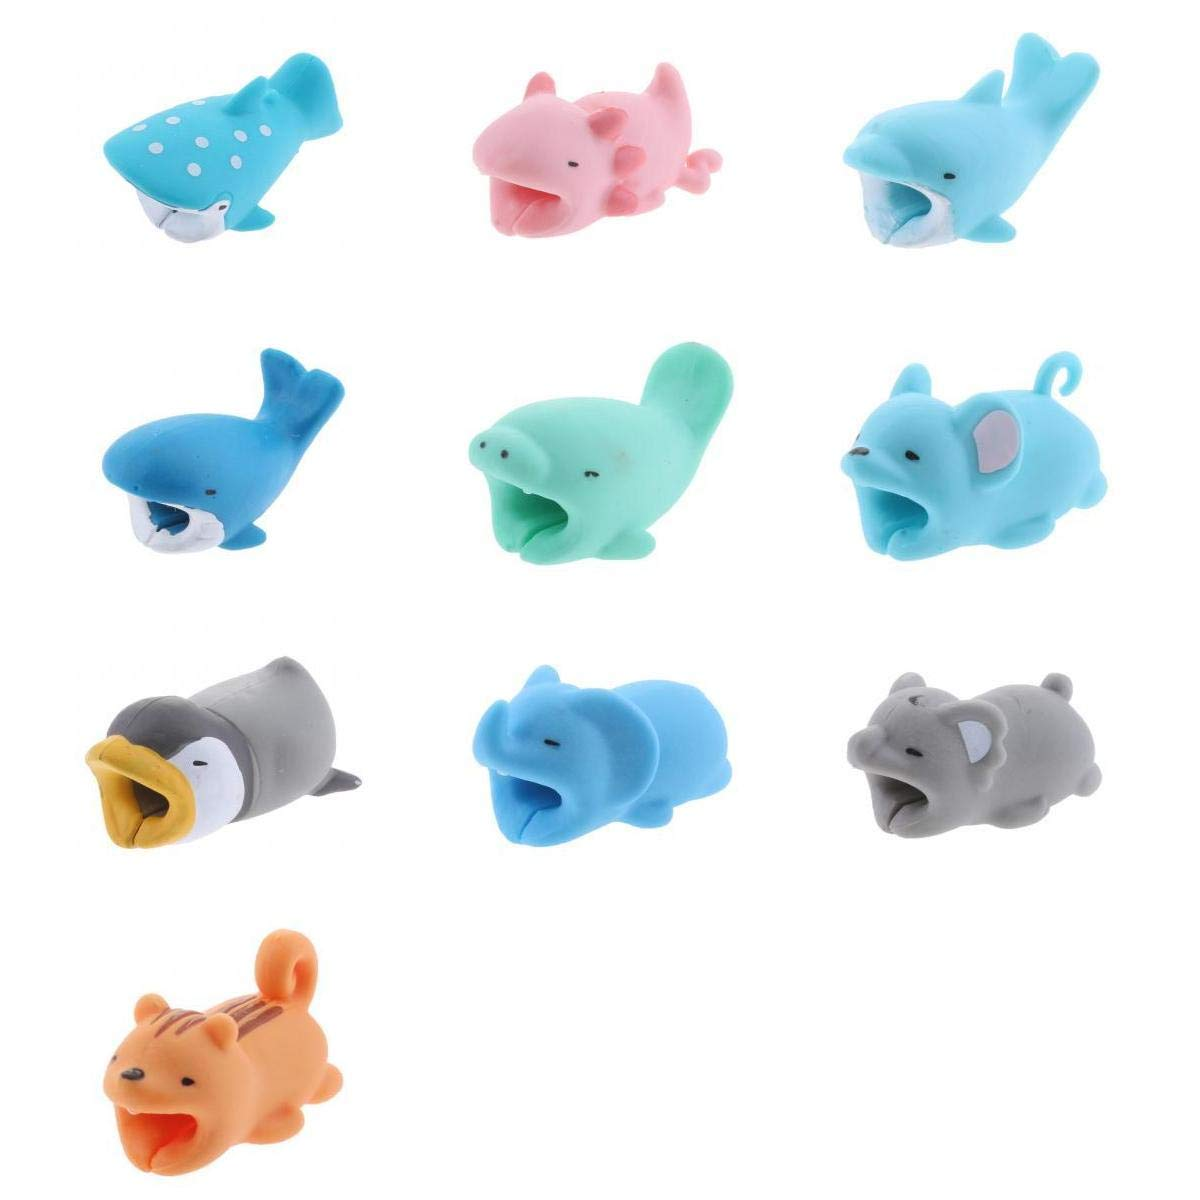 MagiDeal 10Pieces Animal Wire Protectors Headphone Cable Saver for Apple Android Universal Charging Cable Accessory